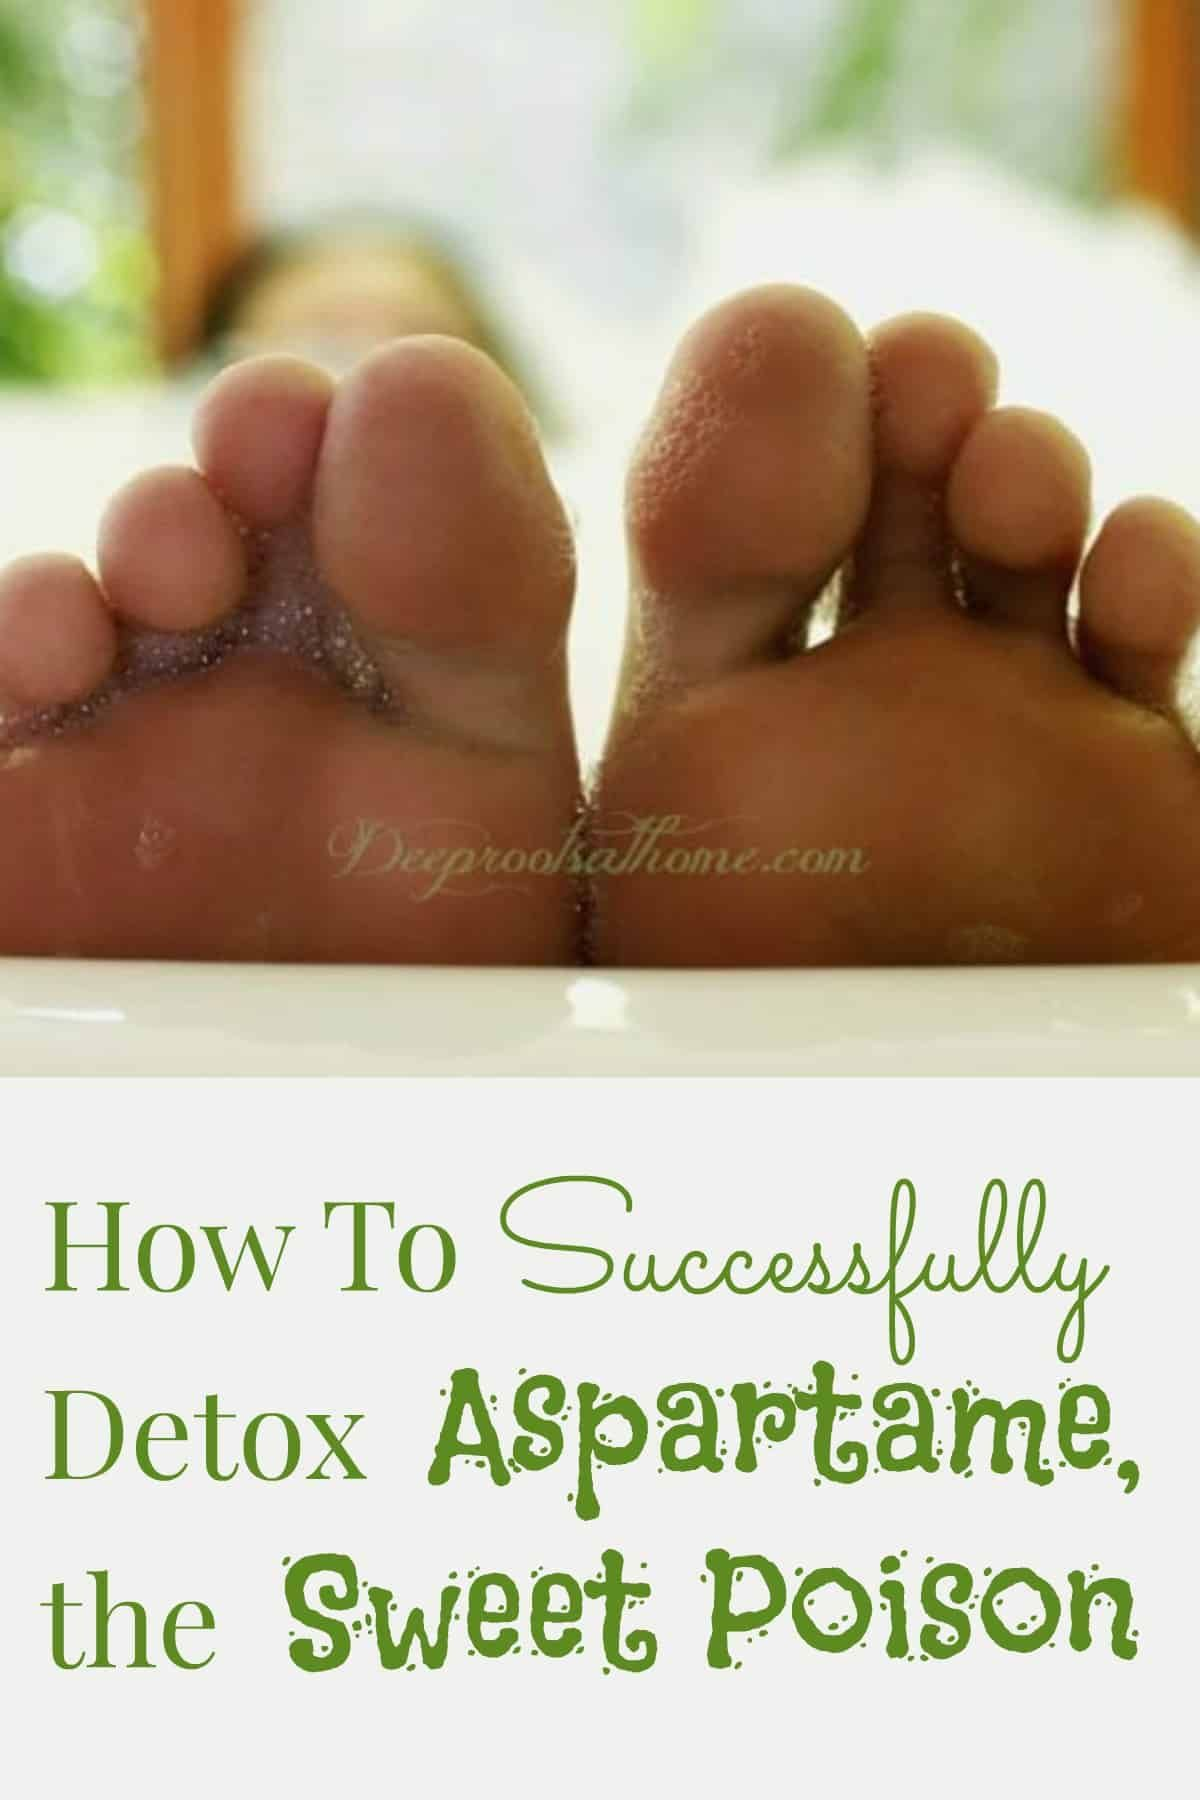 How To Detox Aspartame, the Sweet Poison.  #healthy #recipes #detoxtips #detoxify #lifestyle #life #...